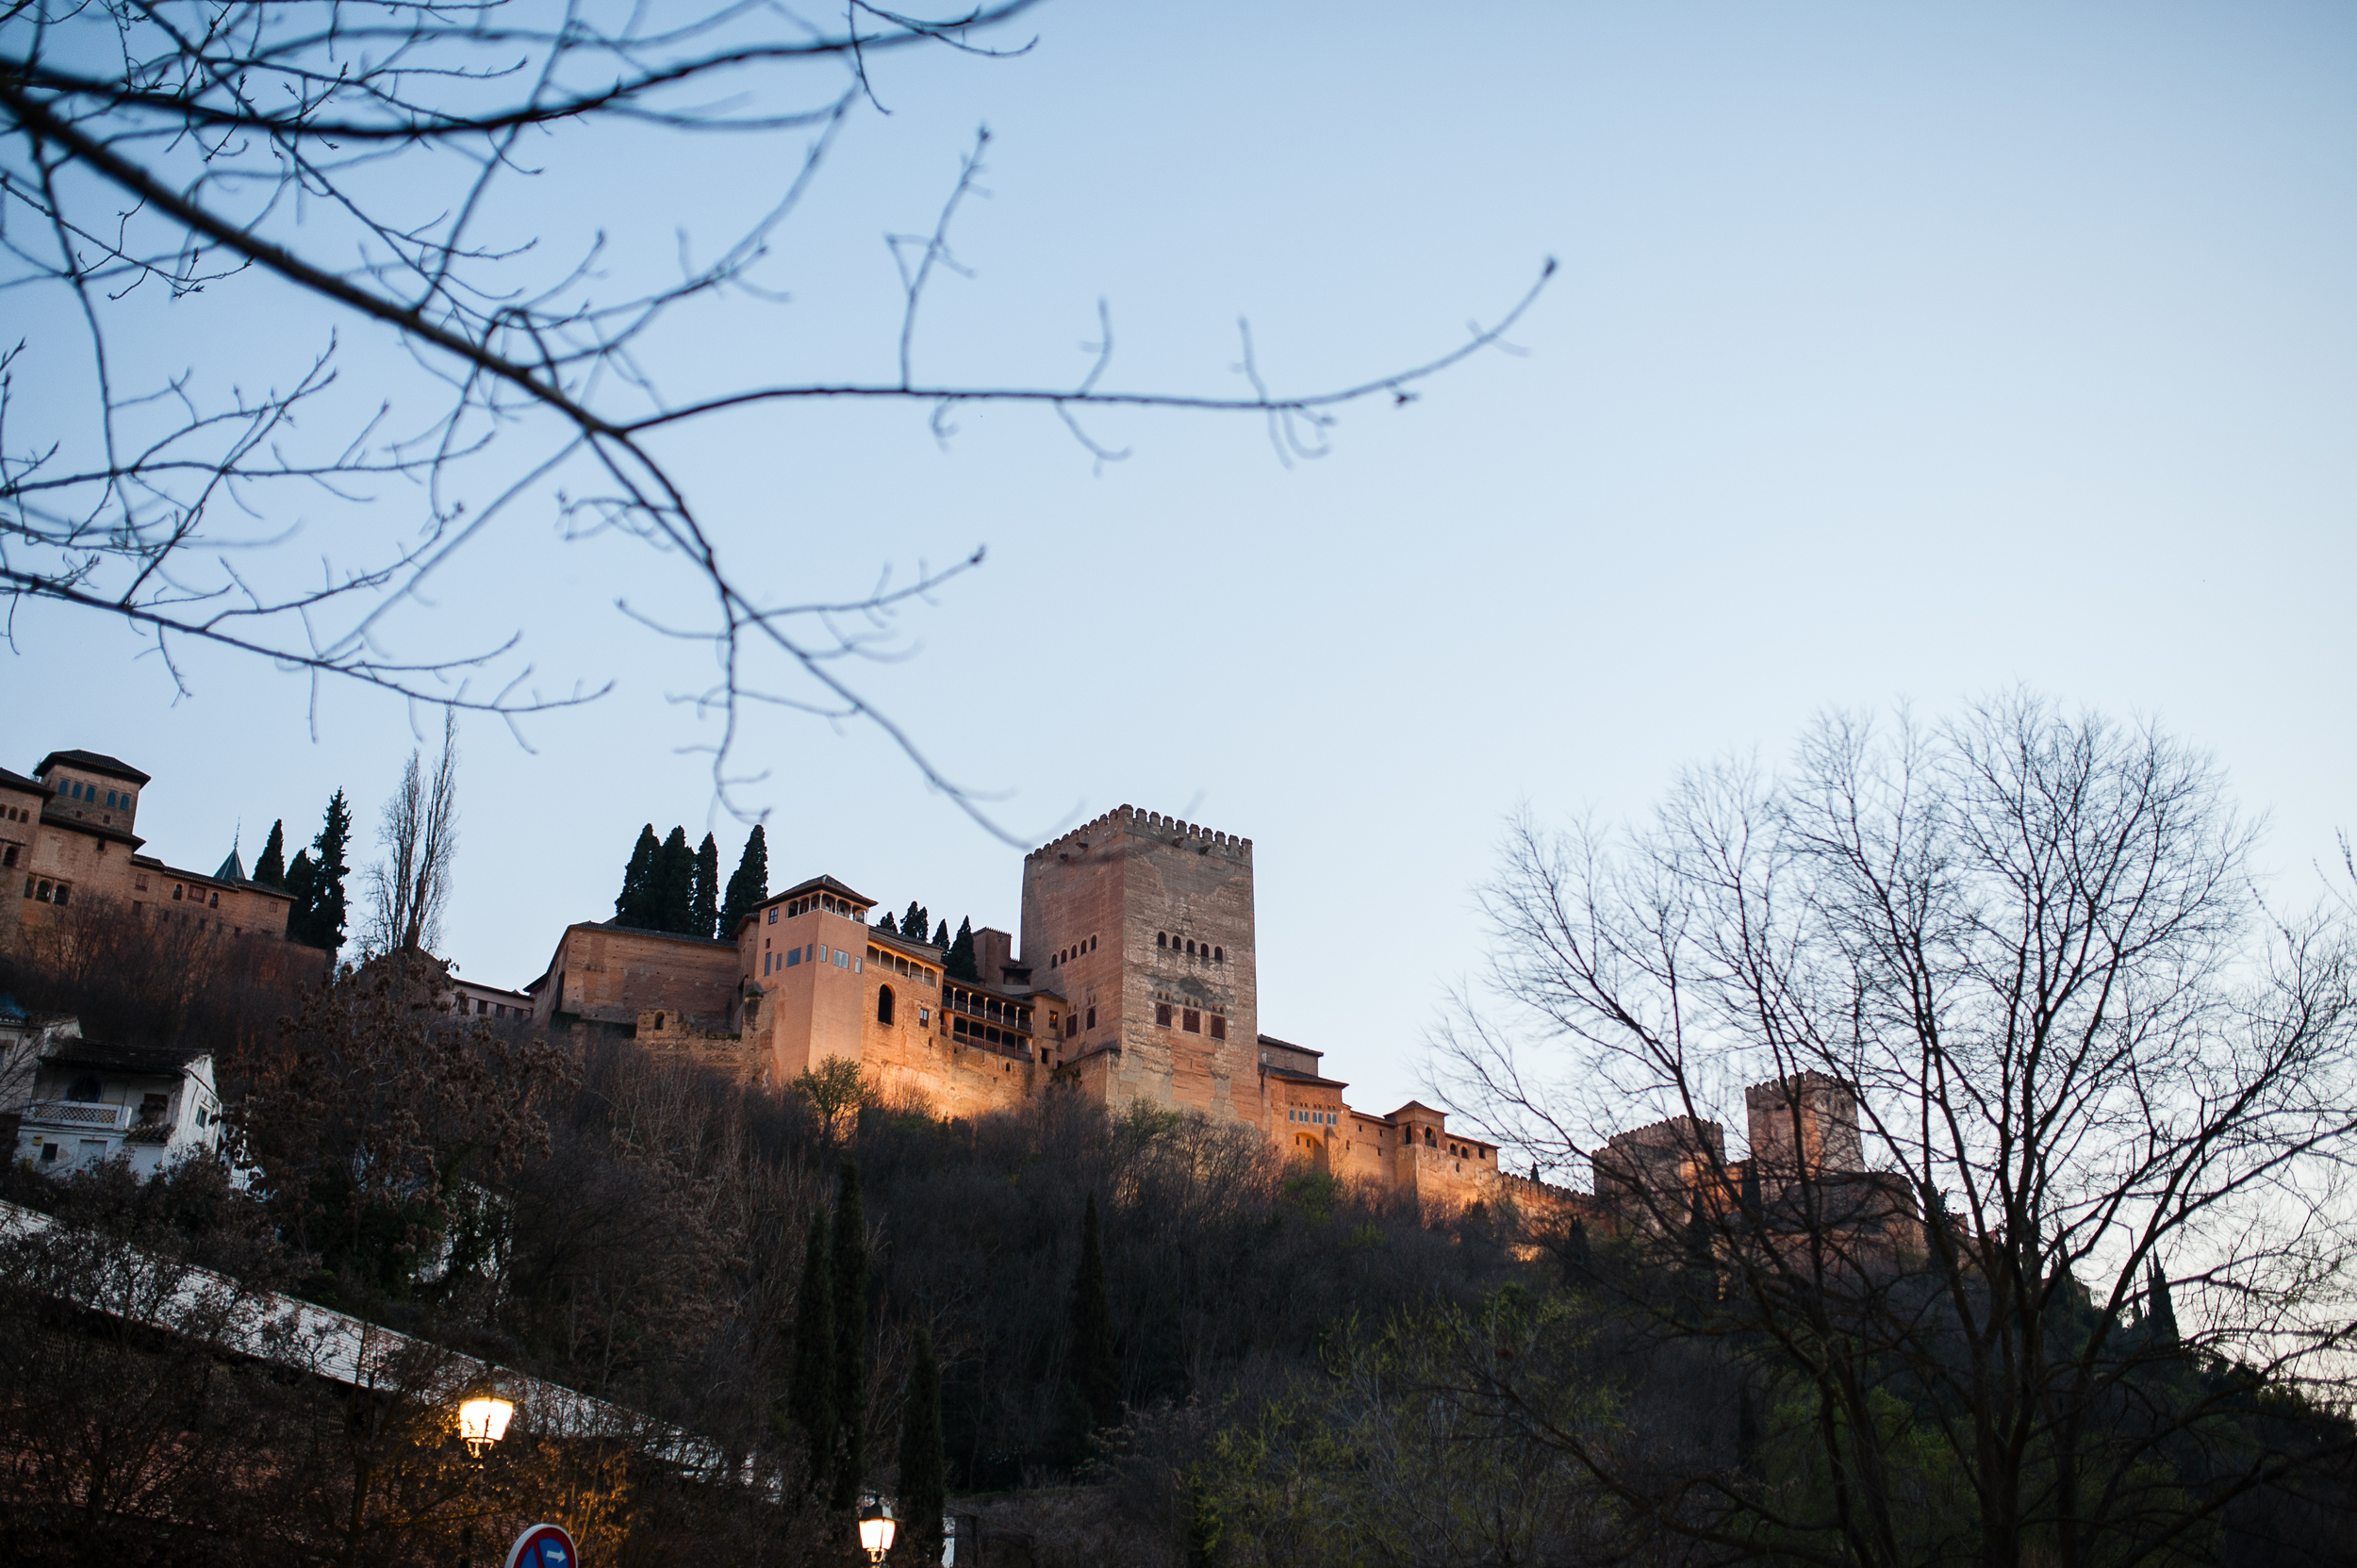 Alhambra from the street by our guesthouse.